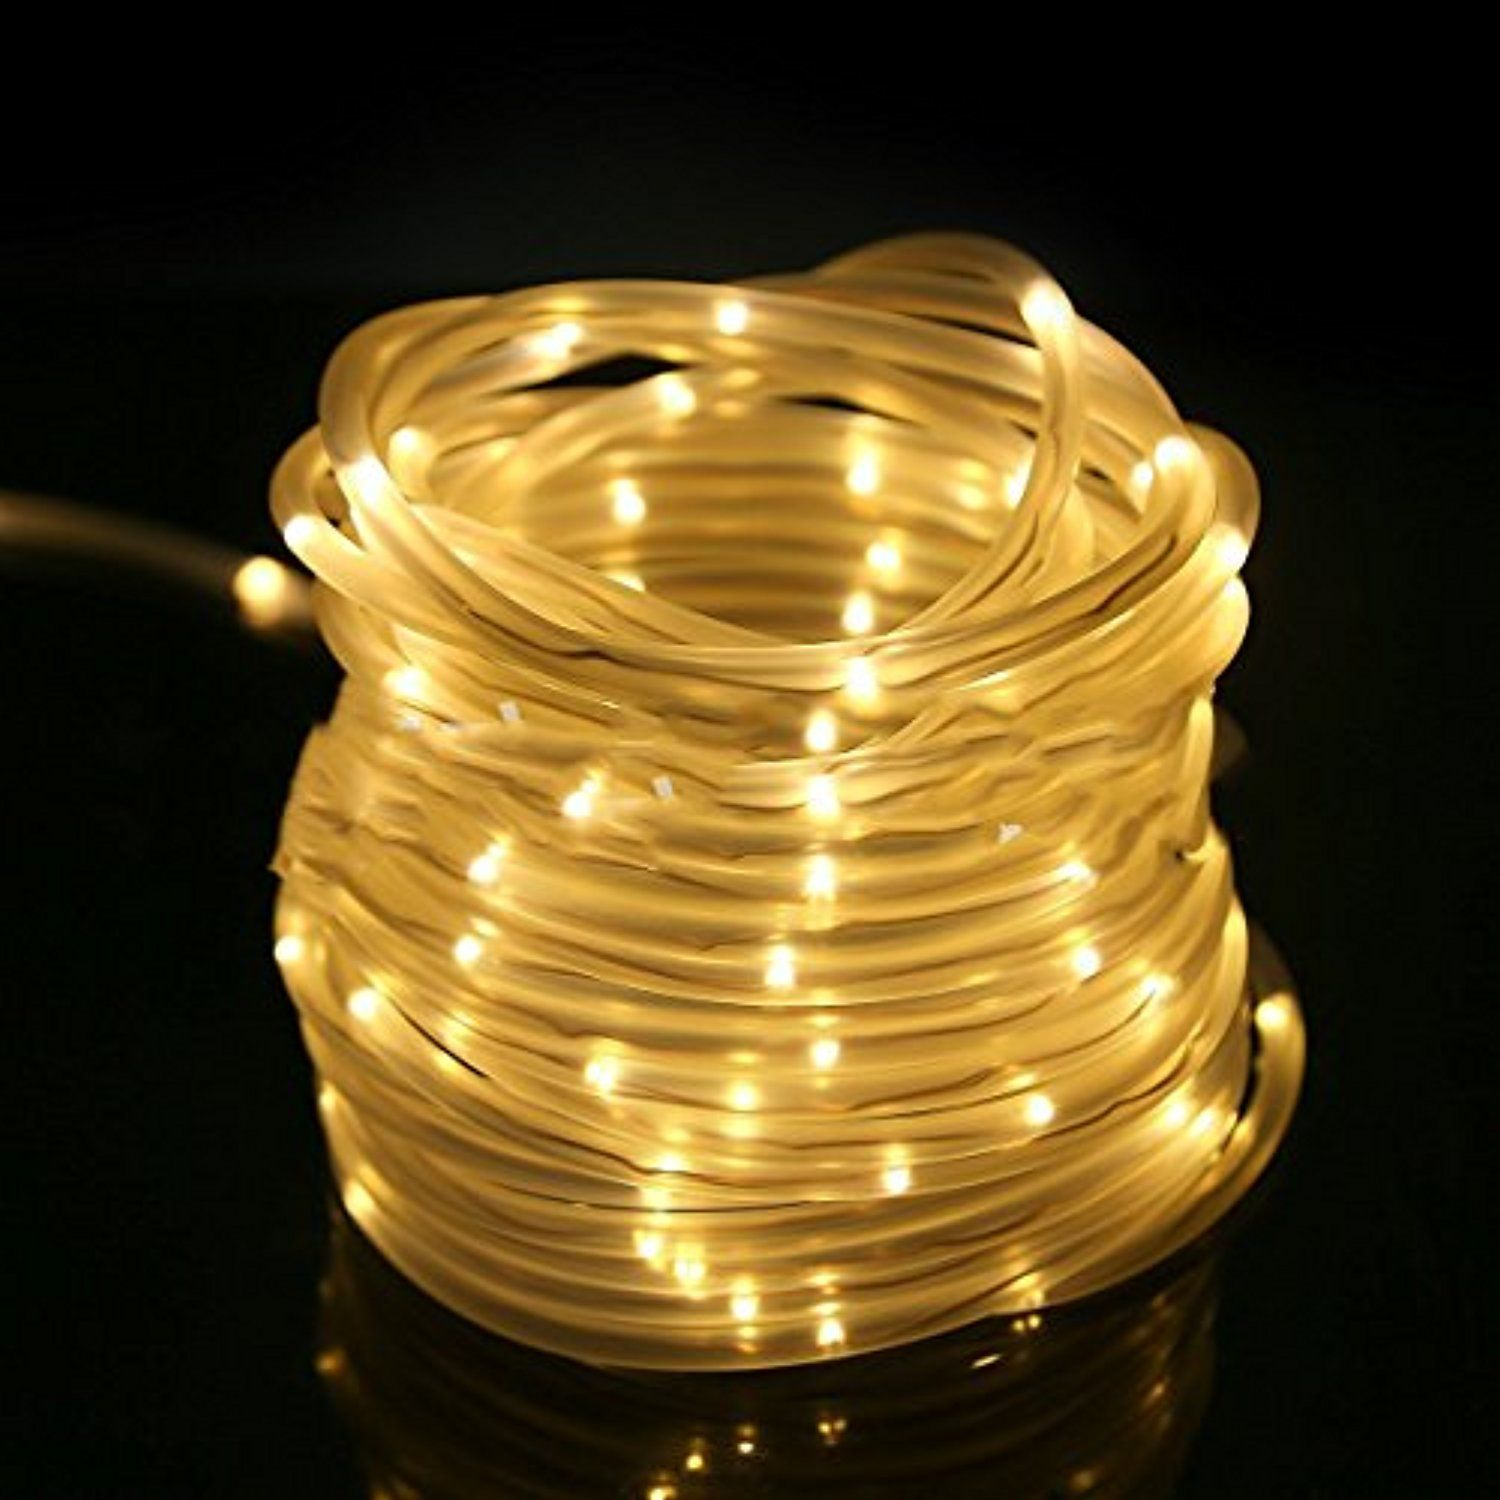 Win Led Rope Lights Christmas String 19ft 69 Outdoor Waterproof Aa Battery Ed Warm White For Tree Wedding Party